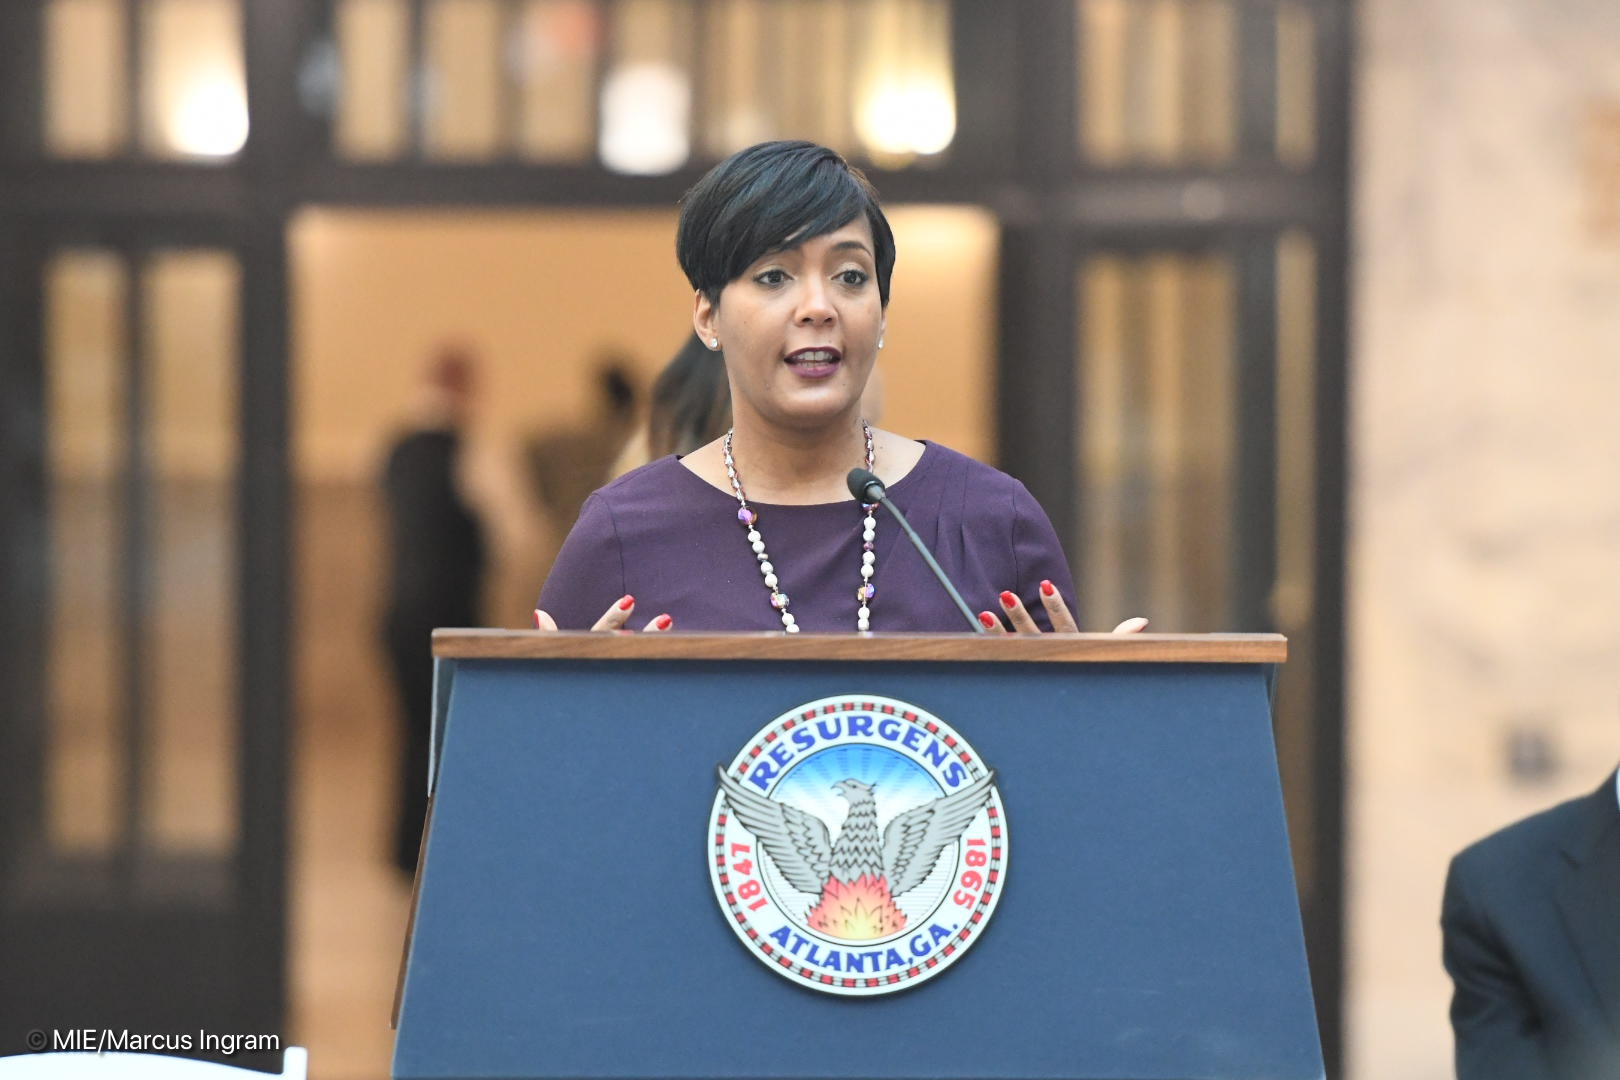 Atlanta Mayor Keisha Lance Bottoms - SBG